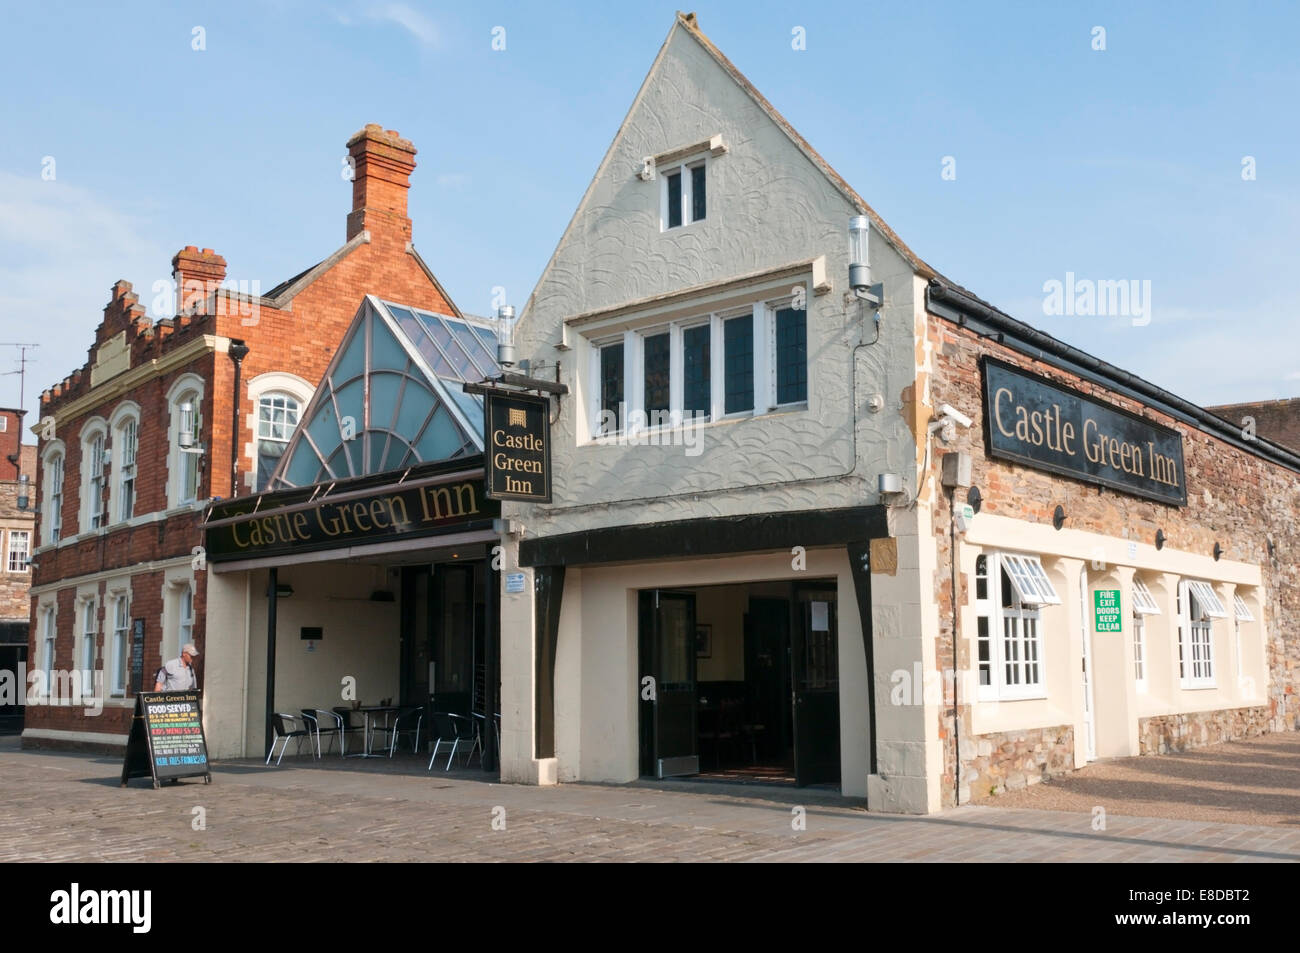 The Castle Green Inn public house in the centre of Taunton, Somerset. - Stock Image